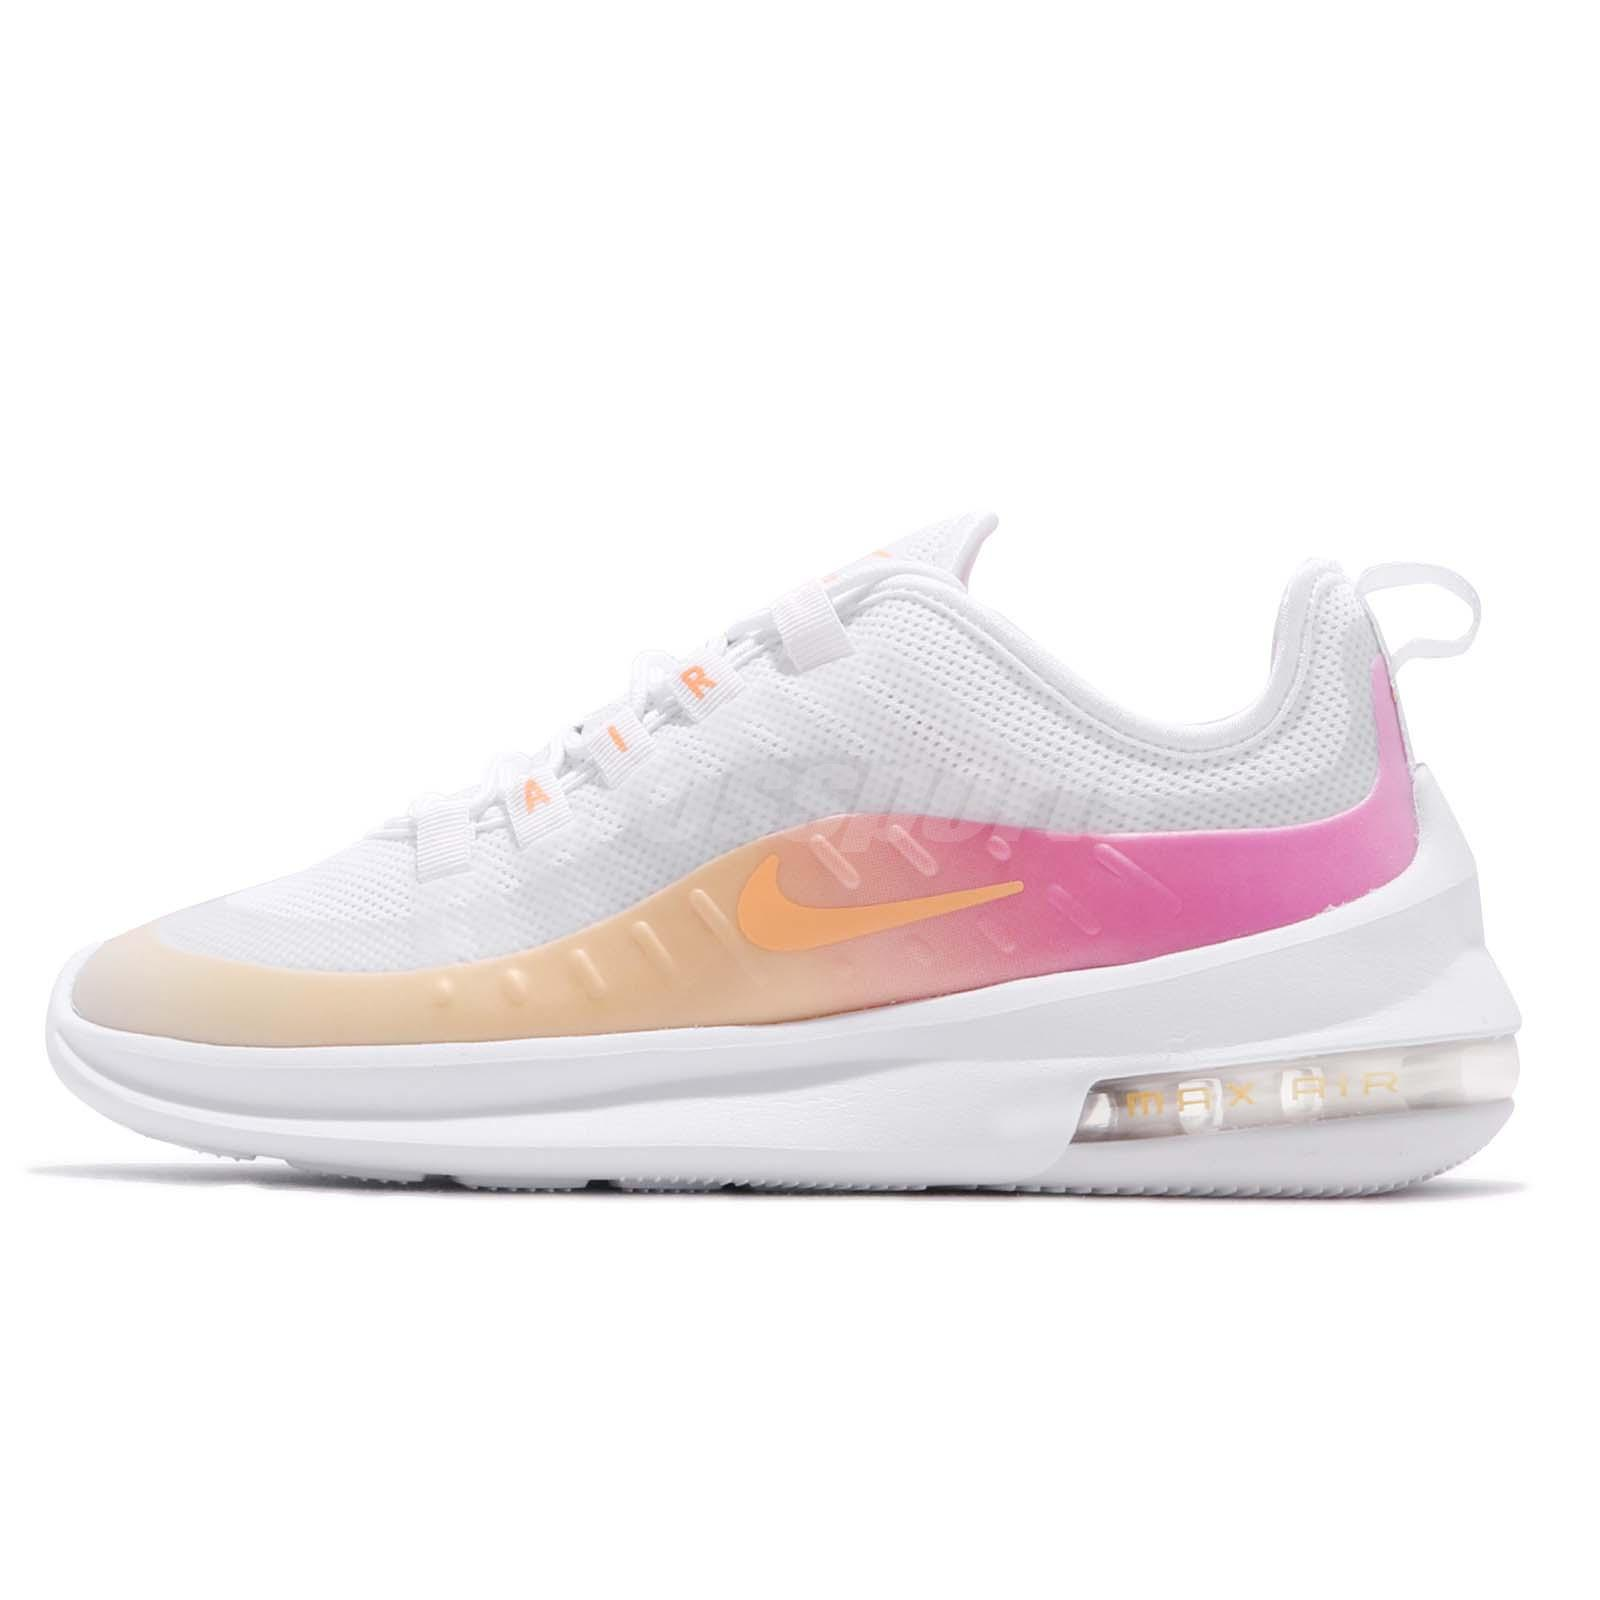 a few days away quality products best wholesaler Details about Nike Wmns Air Max Axis PREM White Melon Tint Laser Fuchsia  Women Shoe BQ0126-101